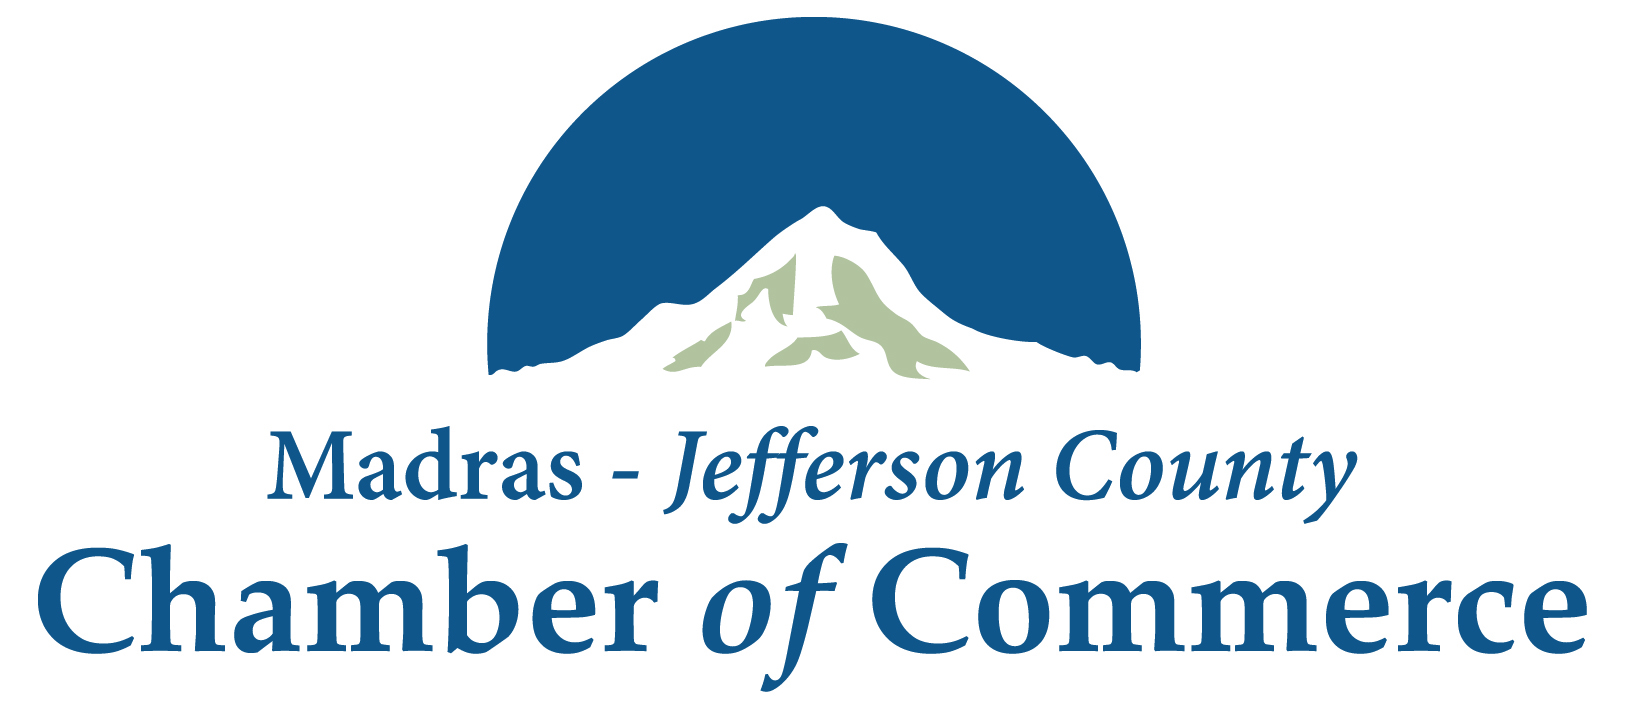 Madras Jefferson County Chamber of Commerce